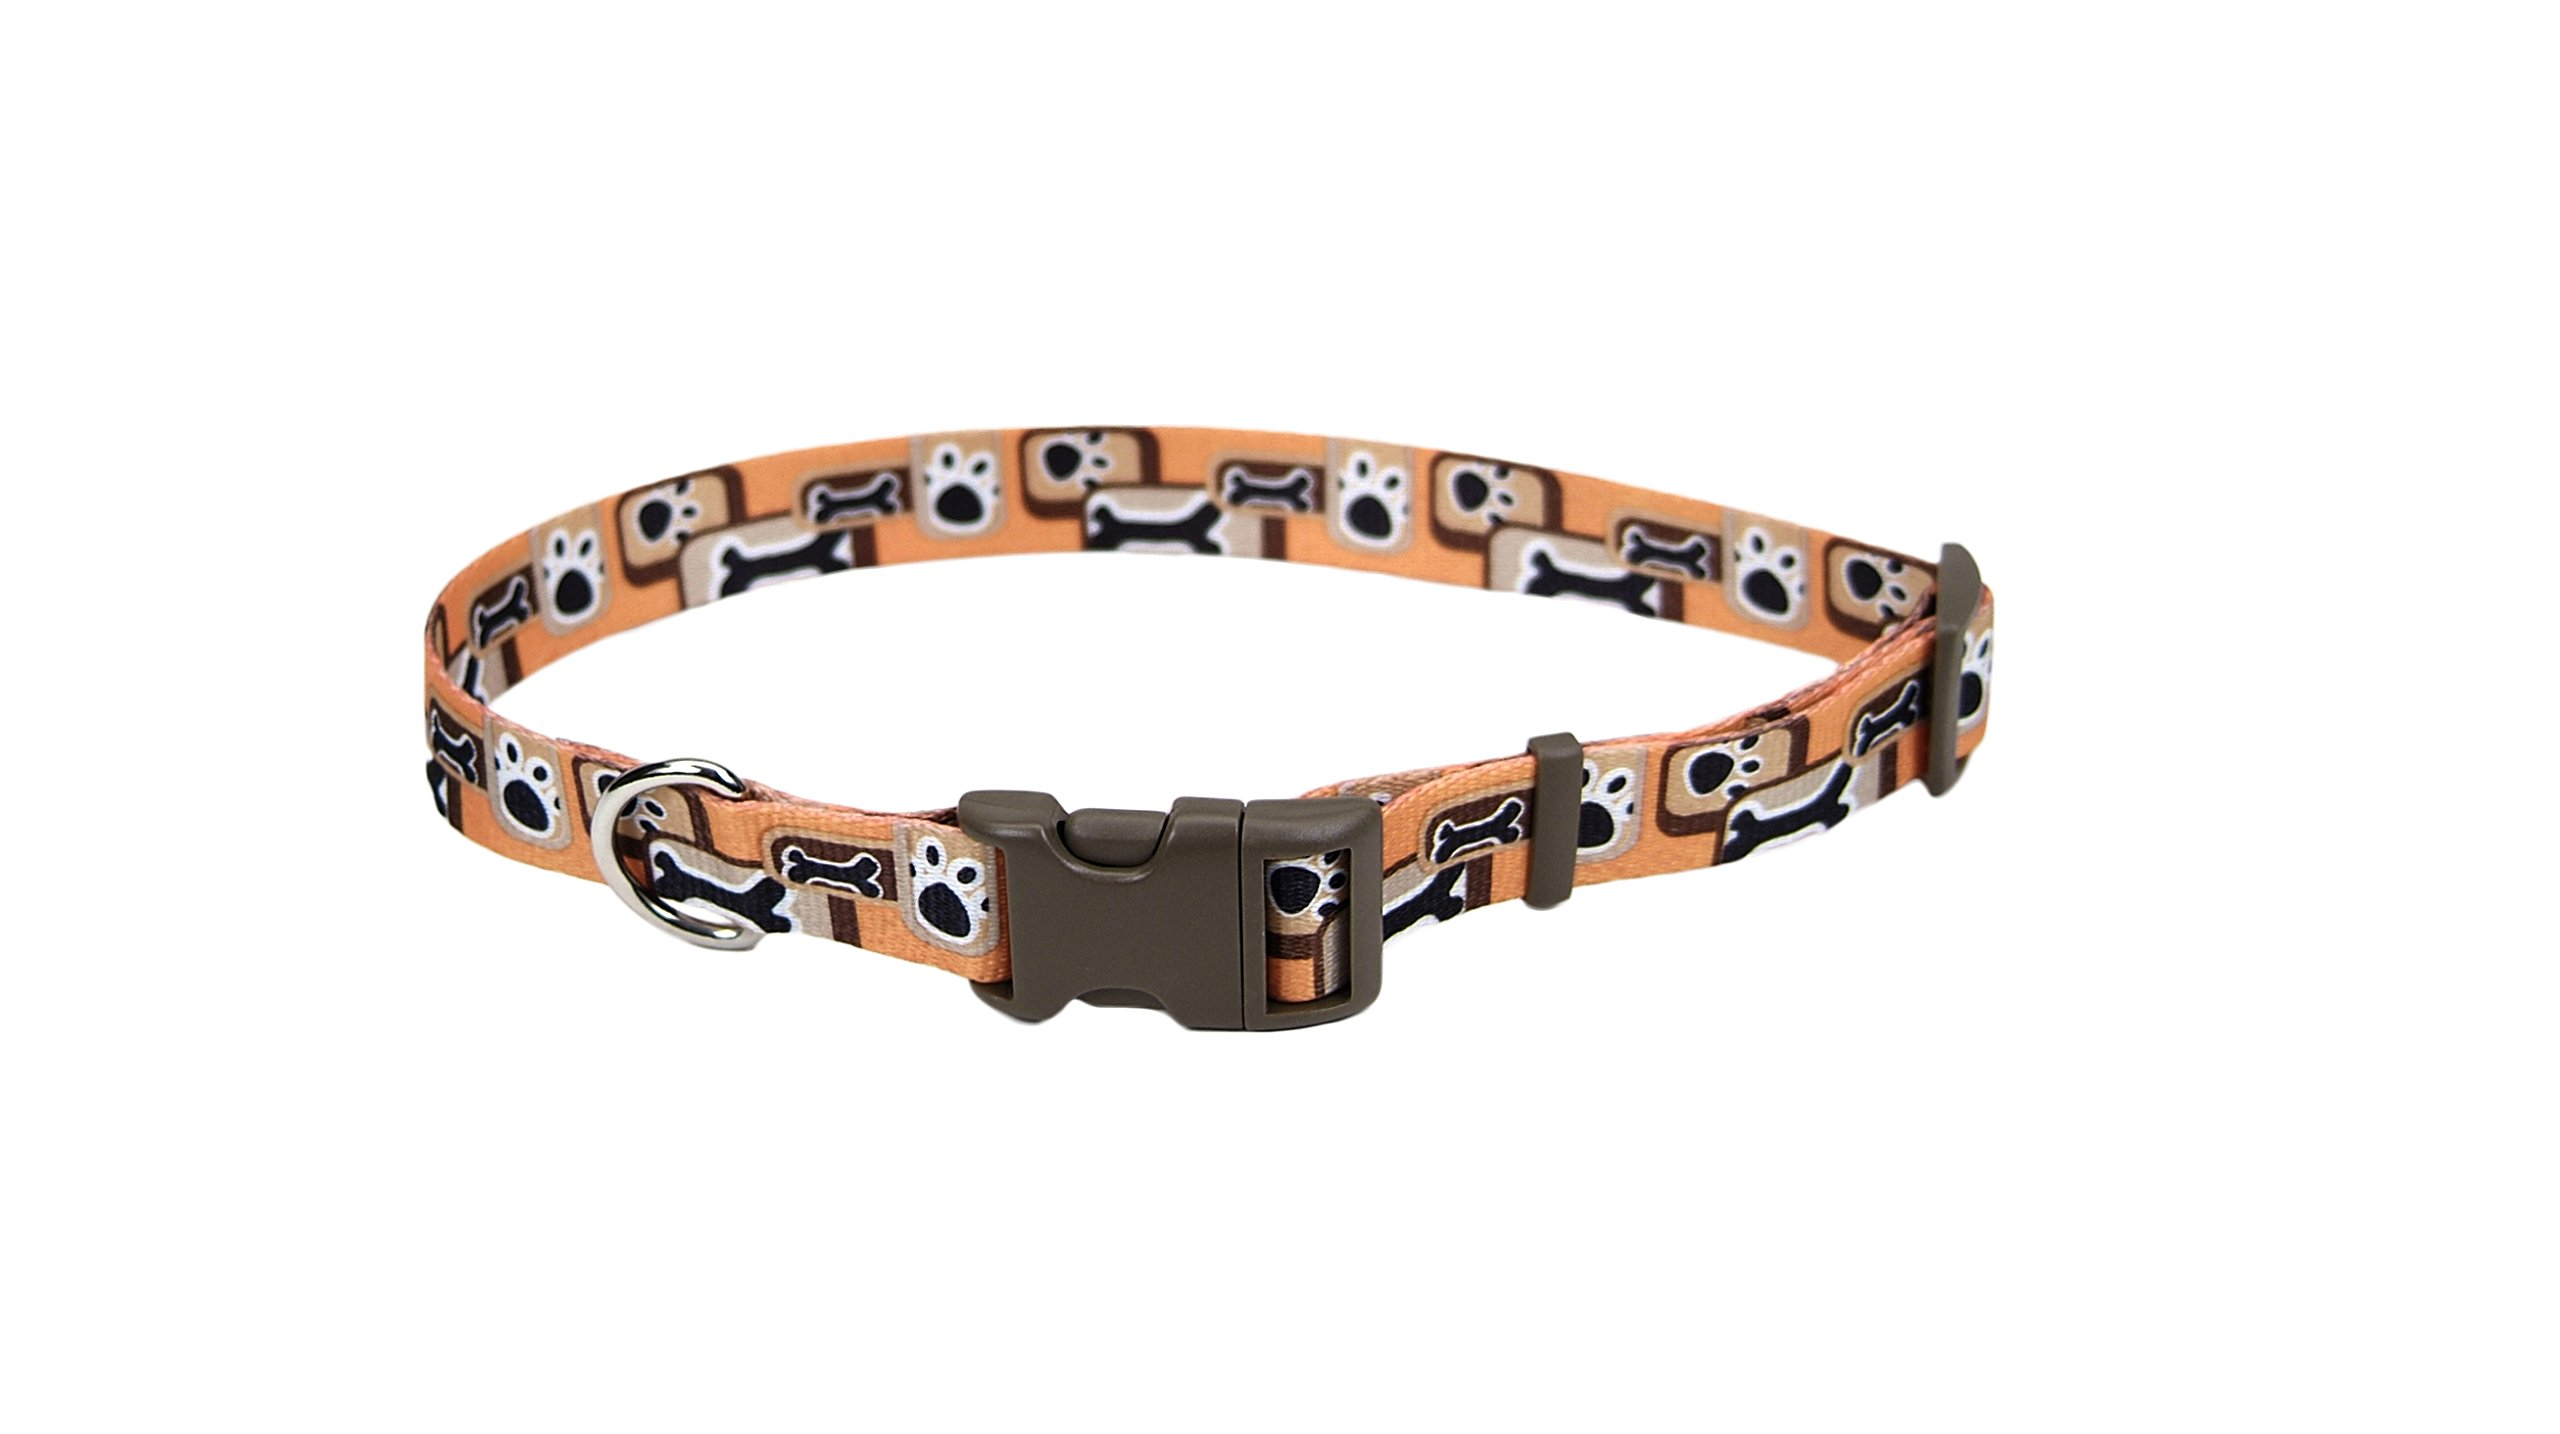 Coastal Pet Products 06921 OBT26 Adjustable Dog Collar, 1'' x 18''-26'' by Pet Attire®